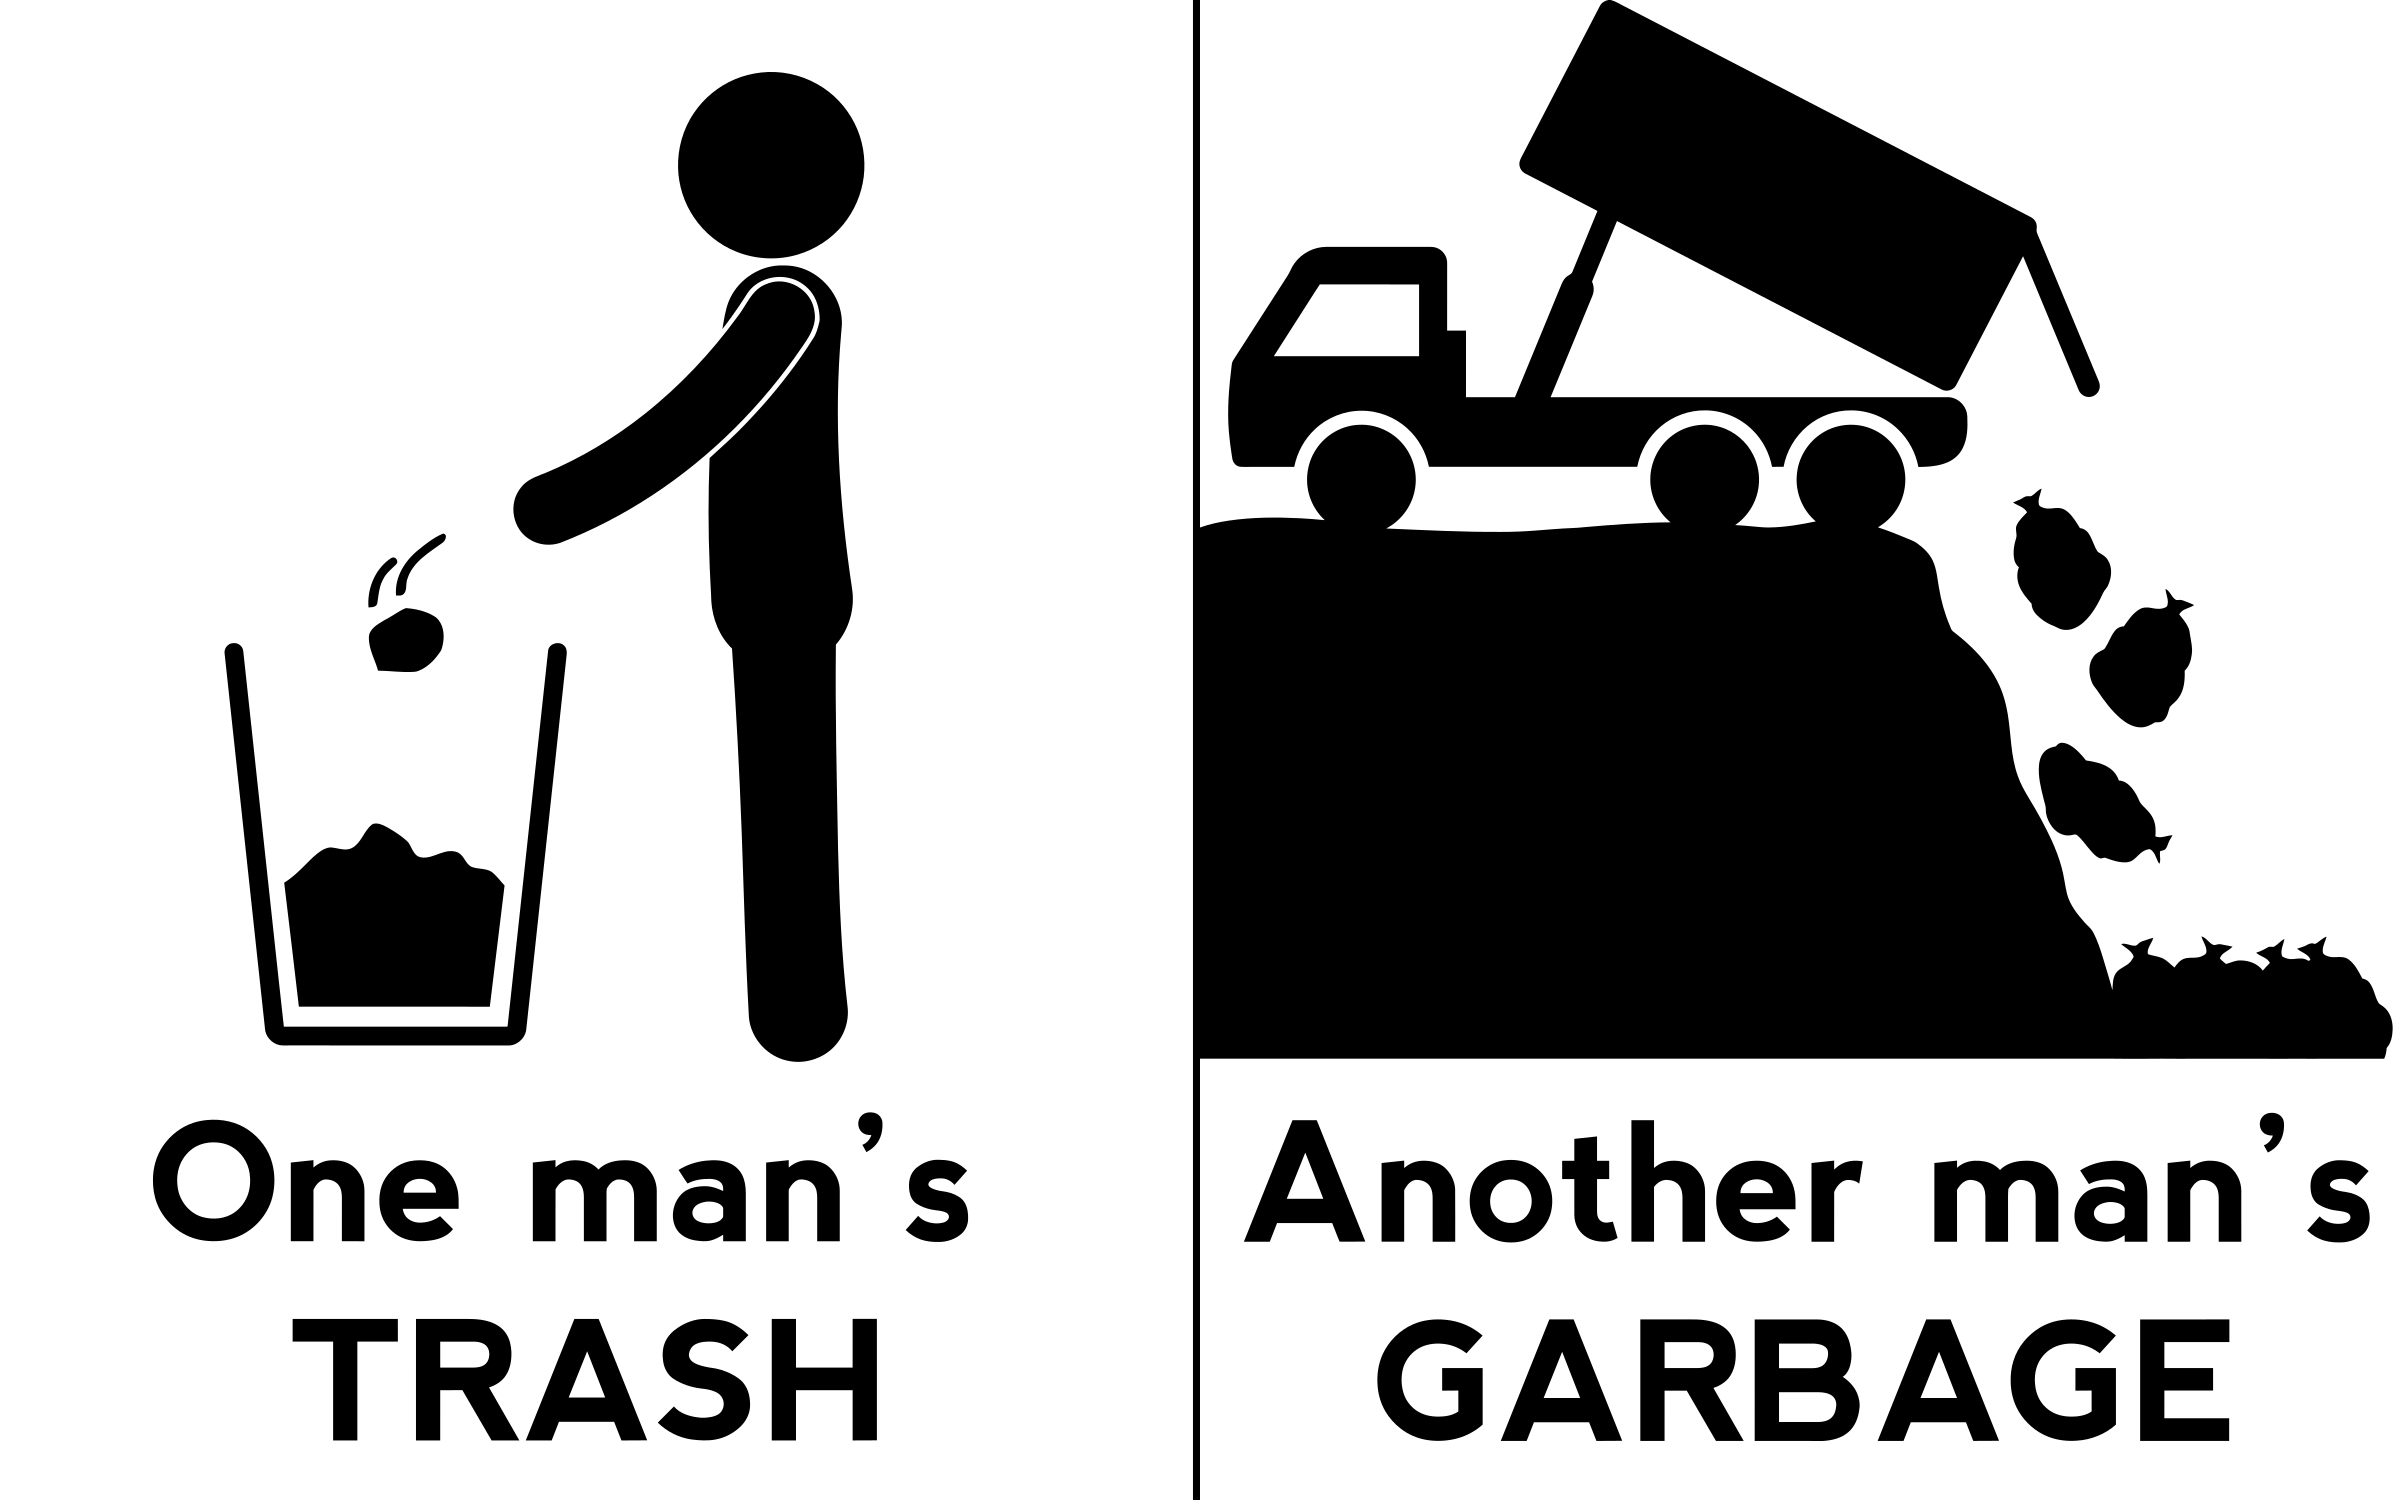 One Man's Trash by GDJ